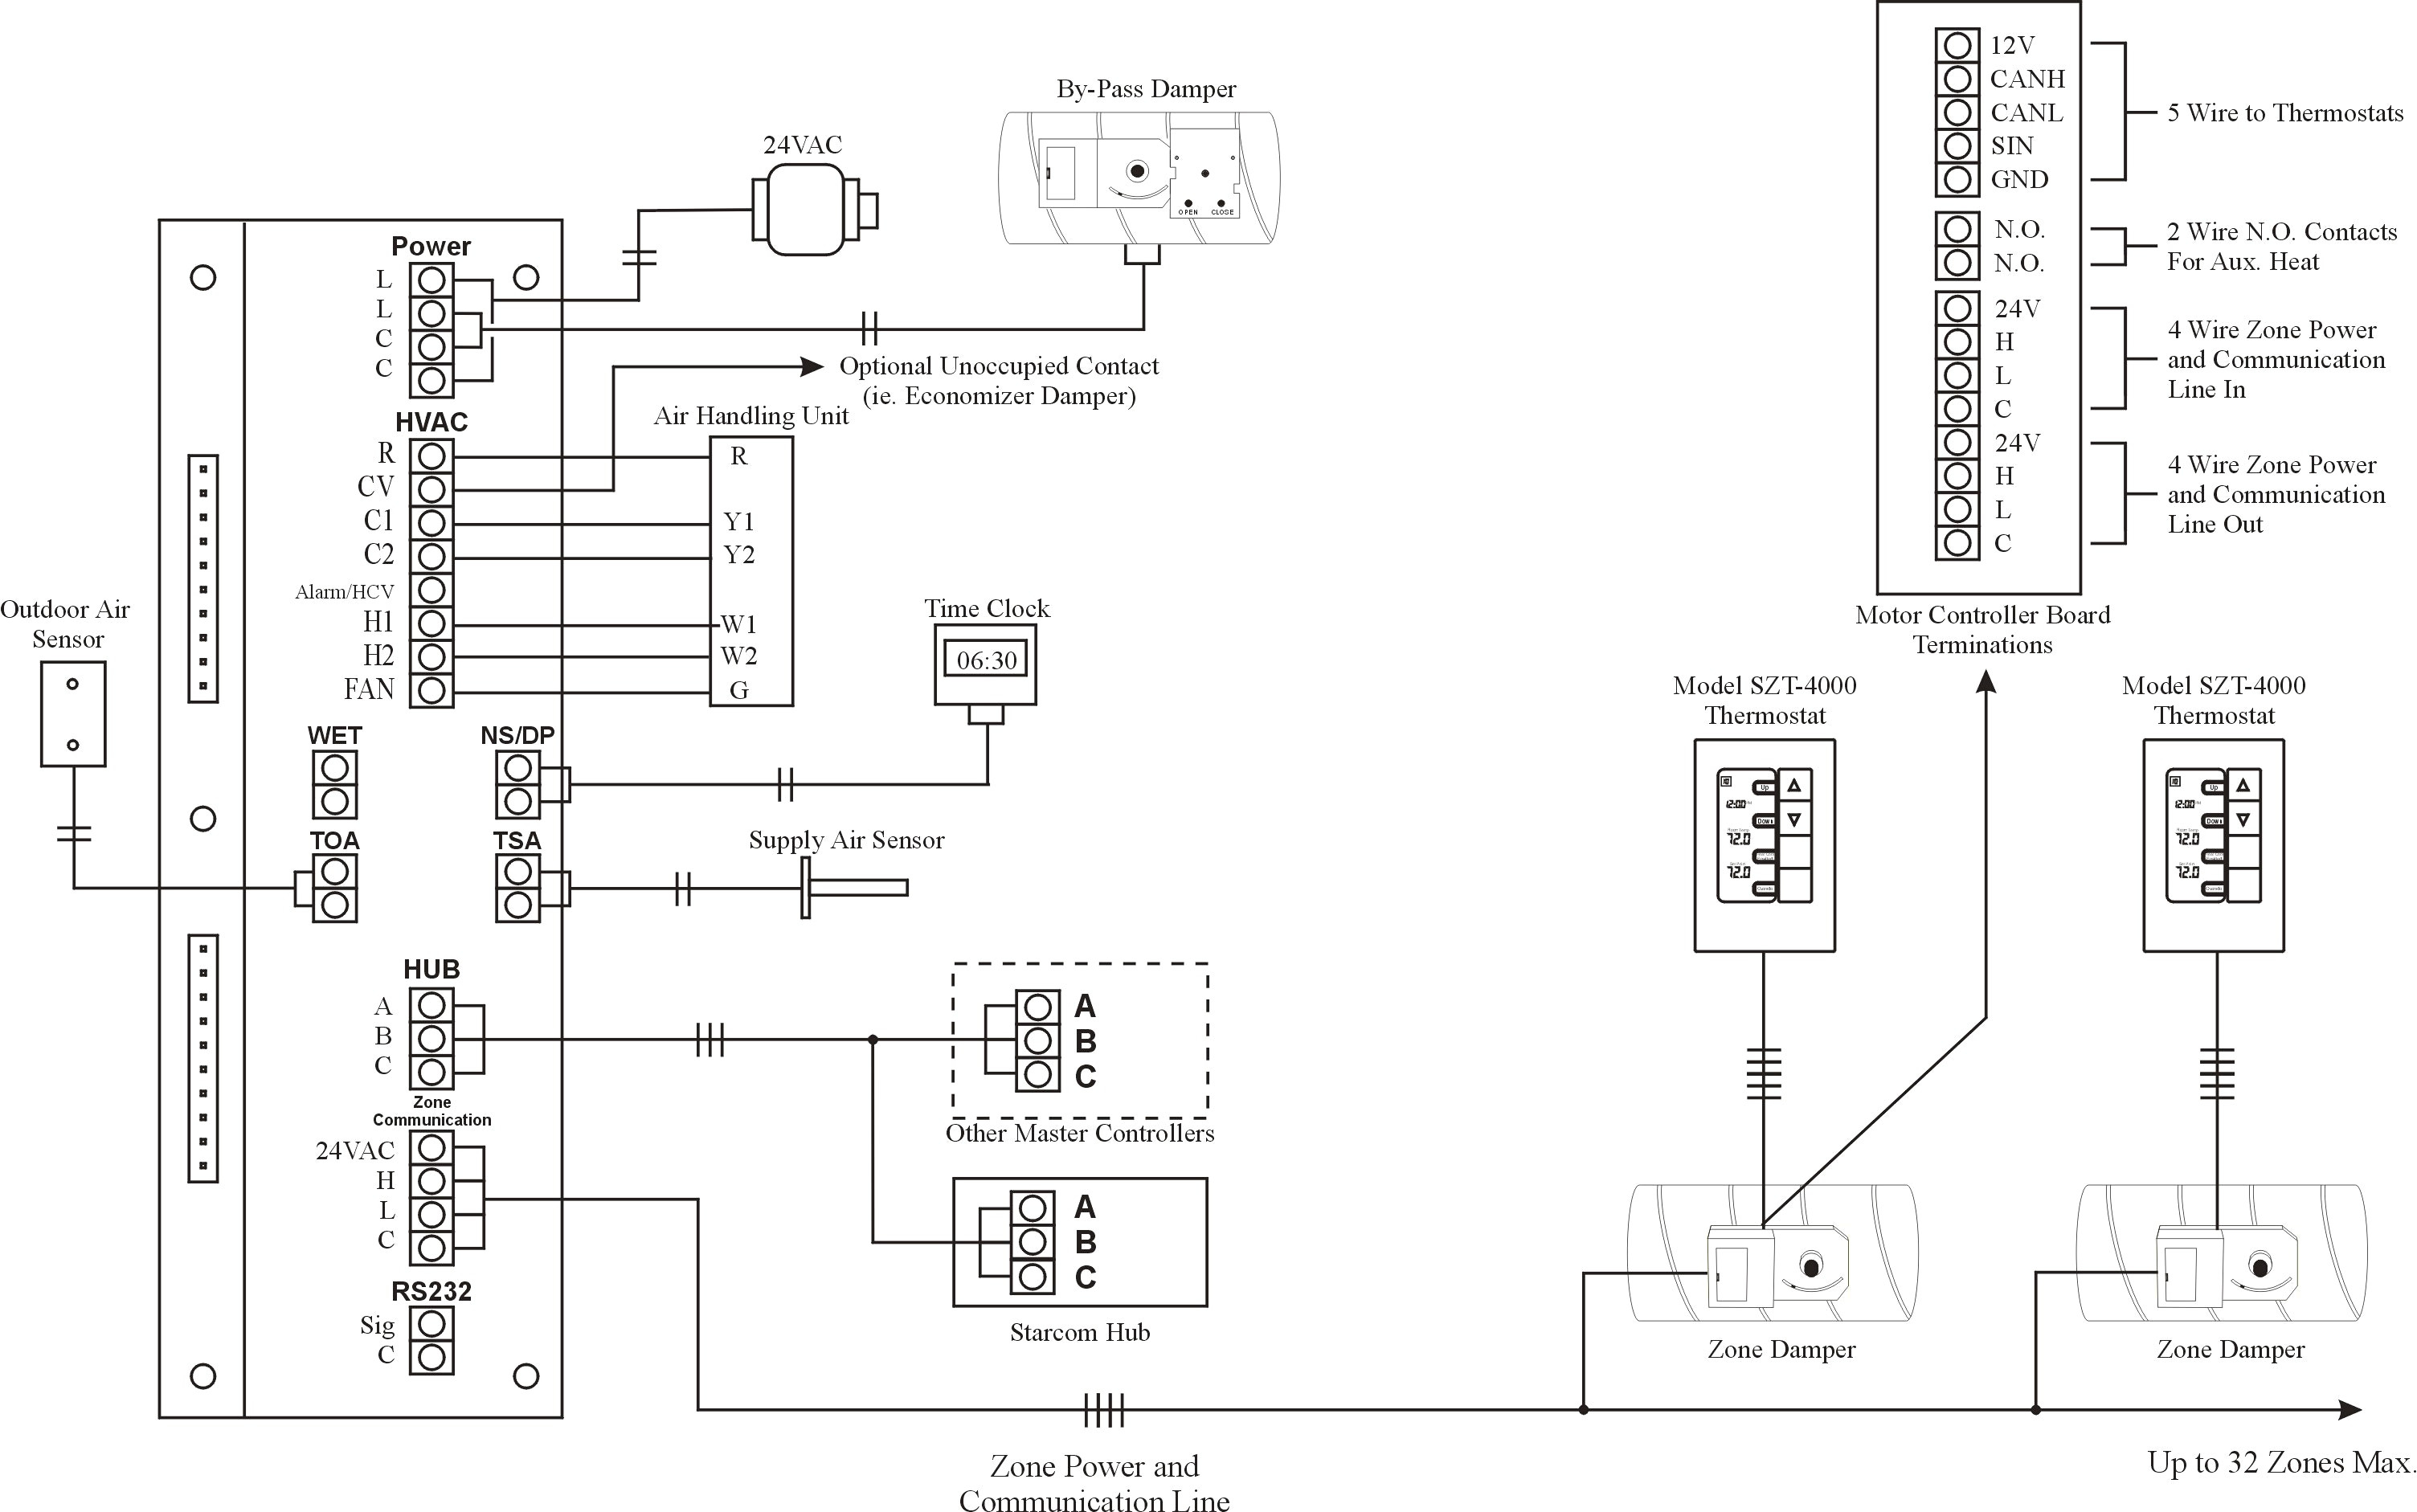 Fire Alarm Smoke Detector Wiring Diagram Sample